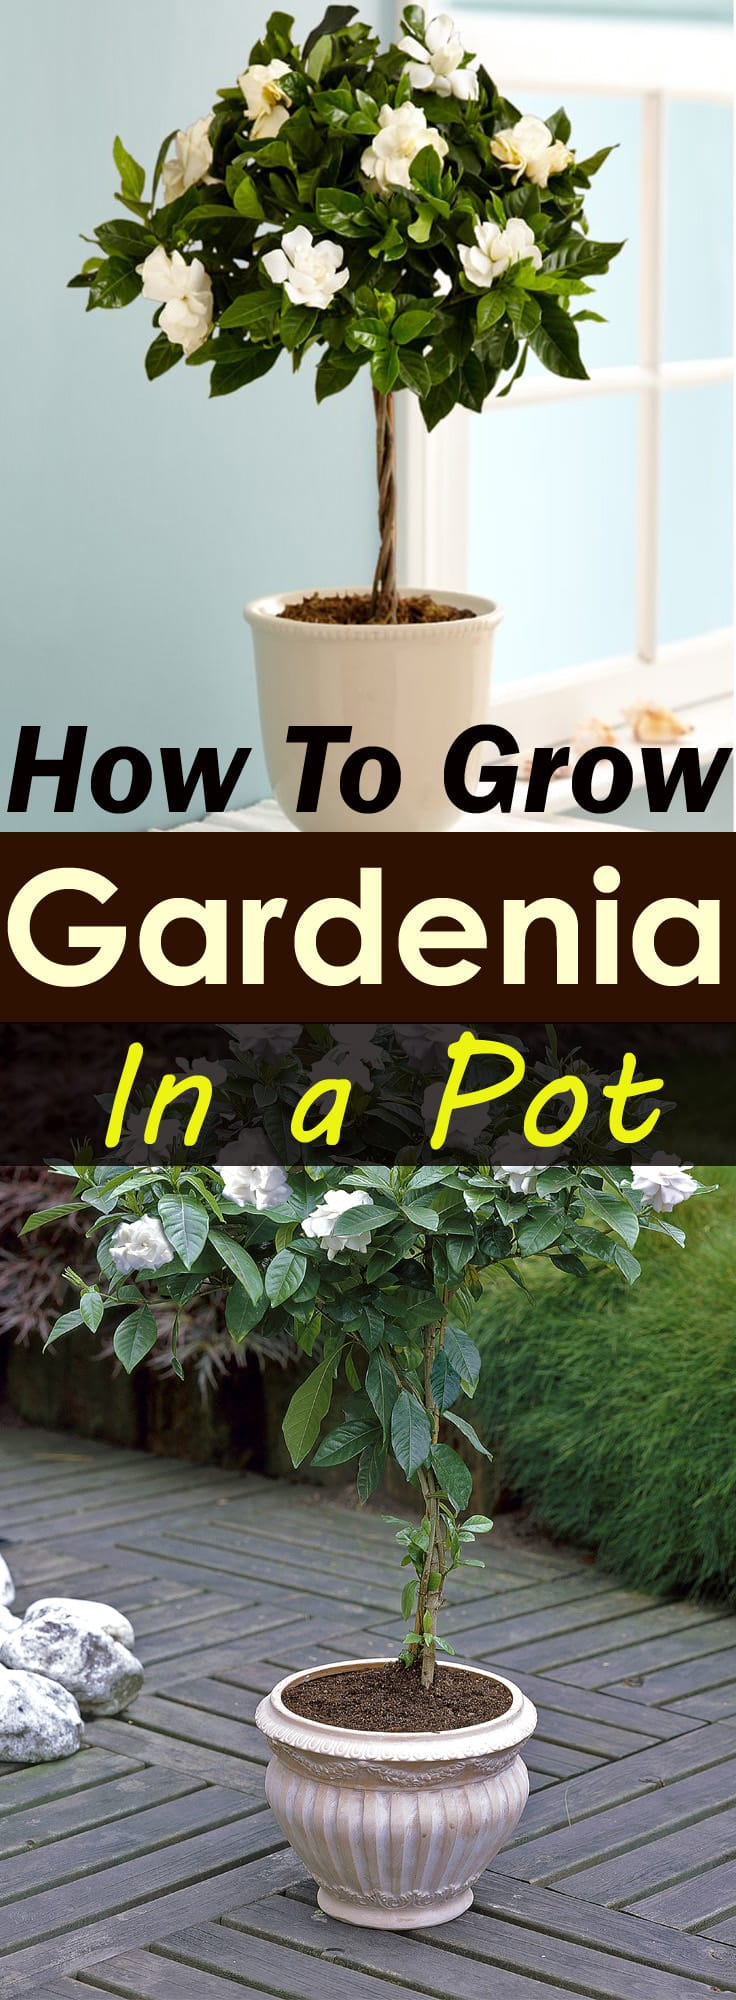 How To Grow And Divide Peonies: Gardenia Tree Care And How To